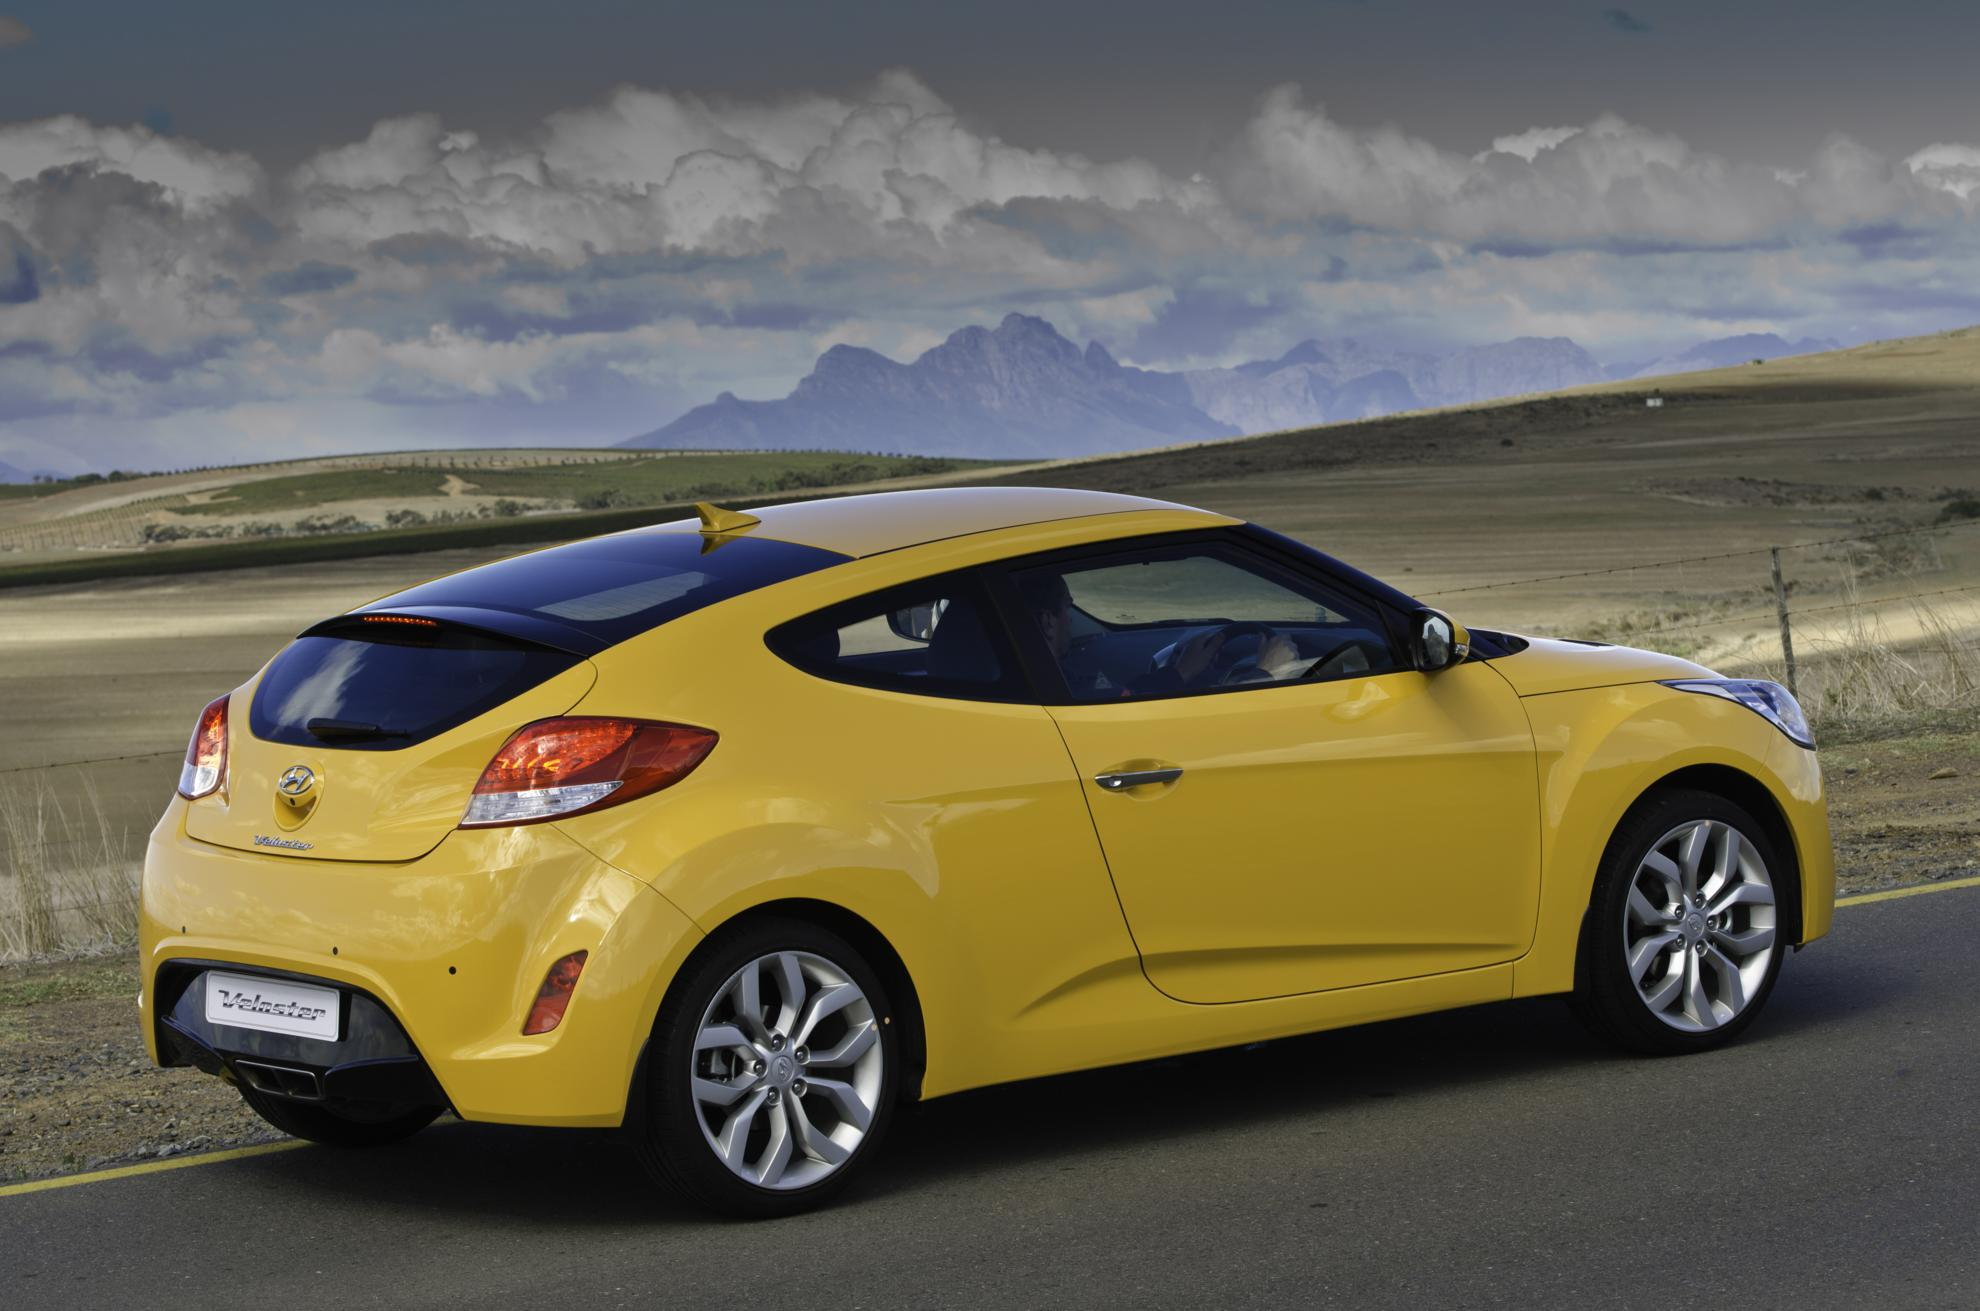 certified qu for val used or dor d en in veloster hyundai bec quebec sale